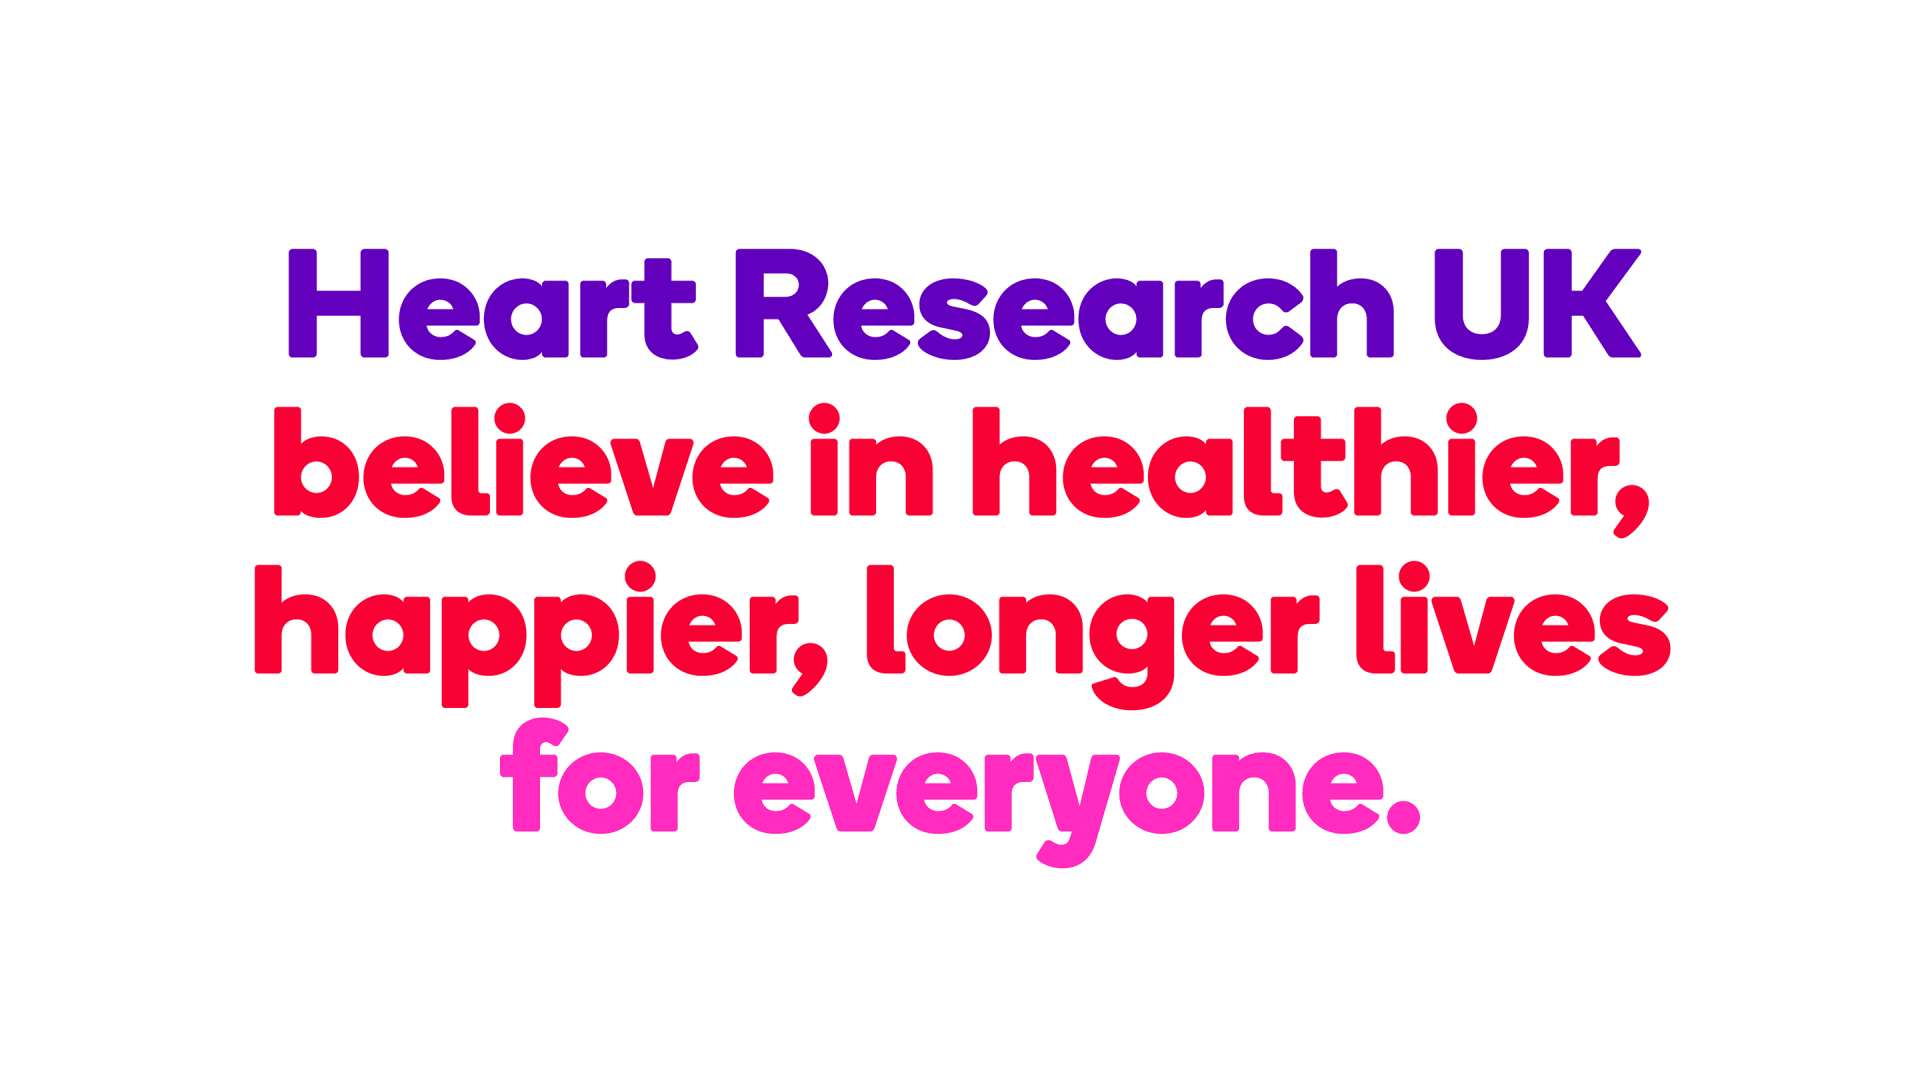 Heart Research UK purpose